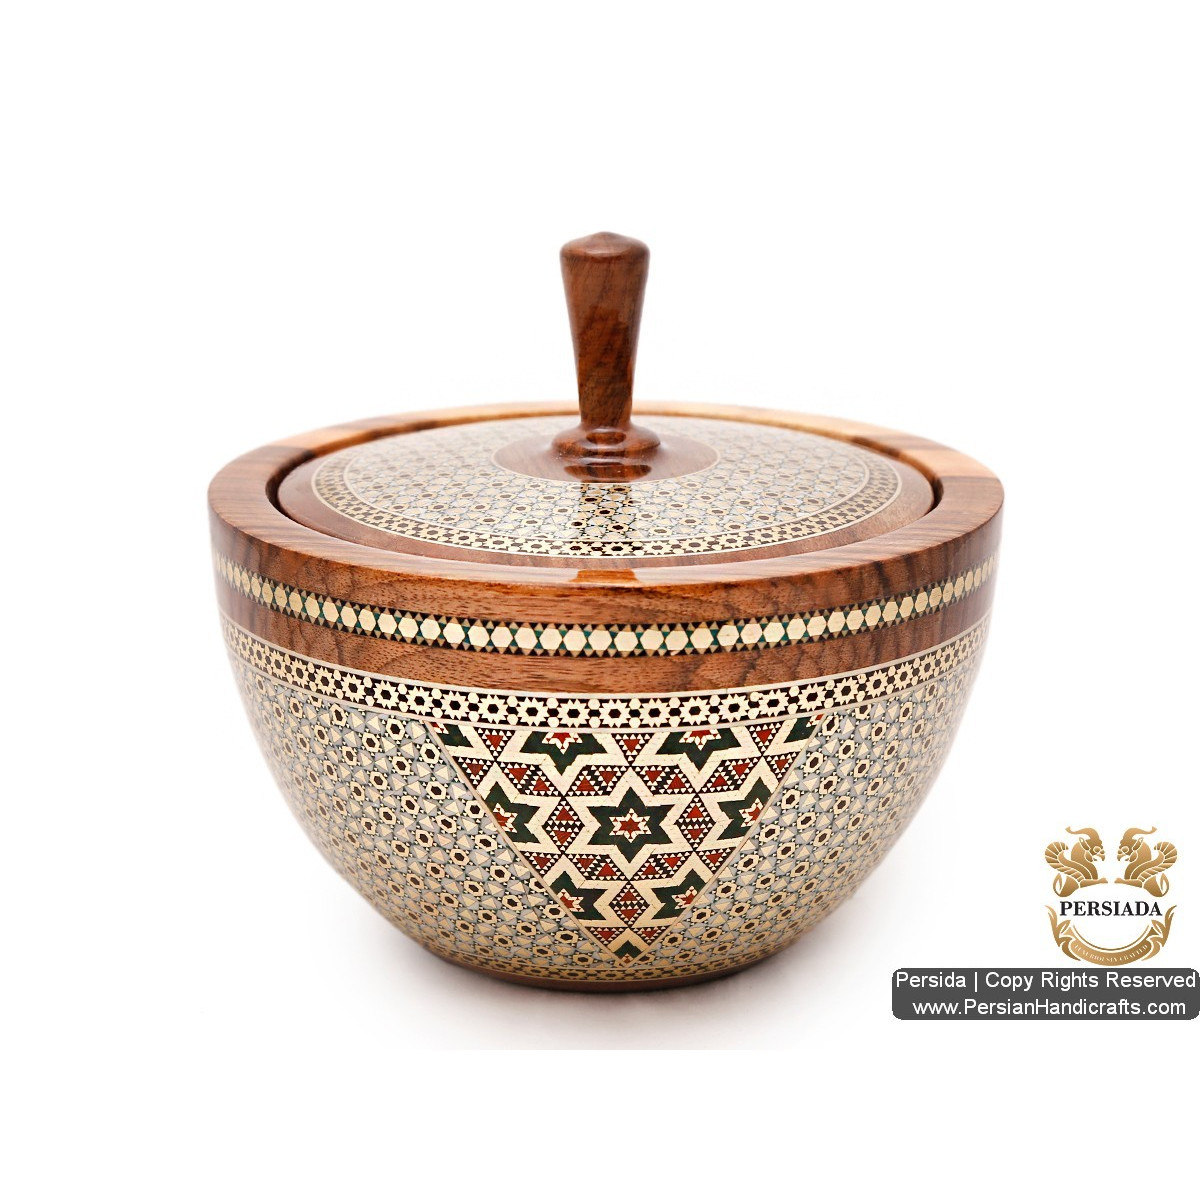 Classy Look Luxurious Bowl | Khatam Marquetry | HKH5202 | Persiada